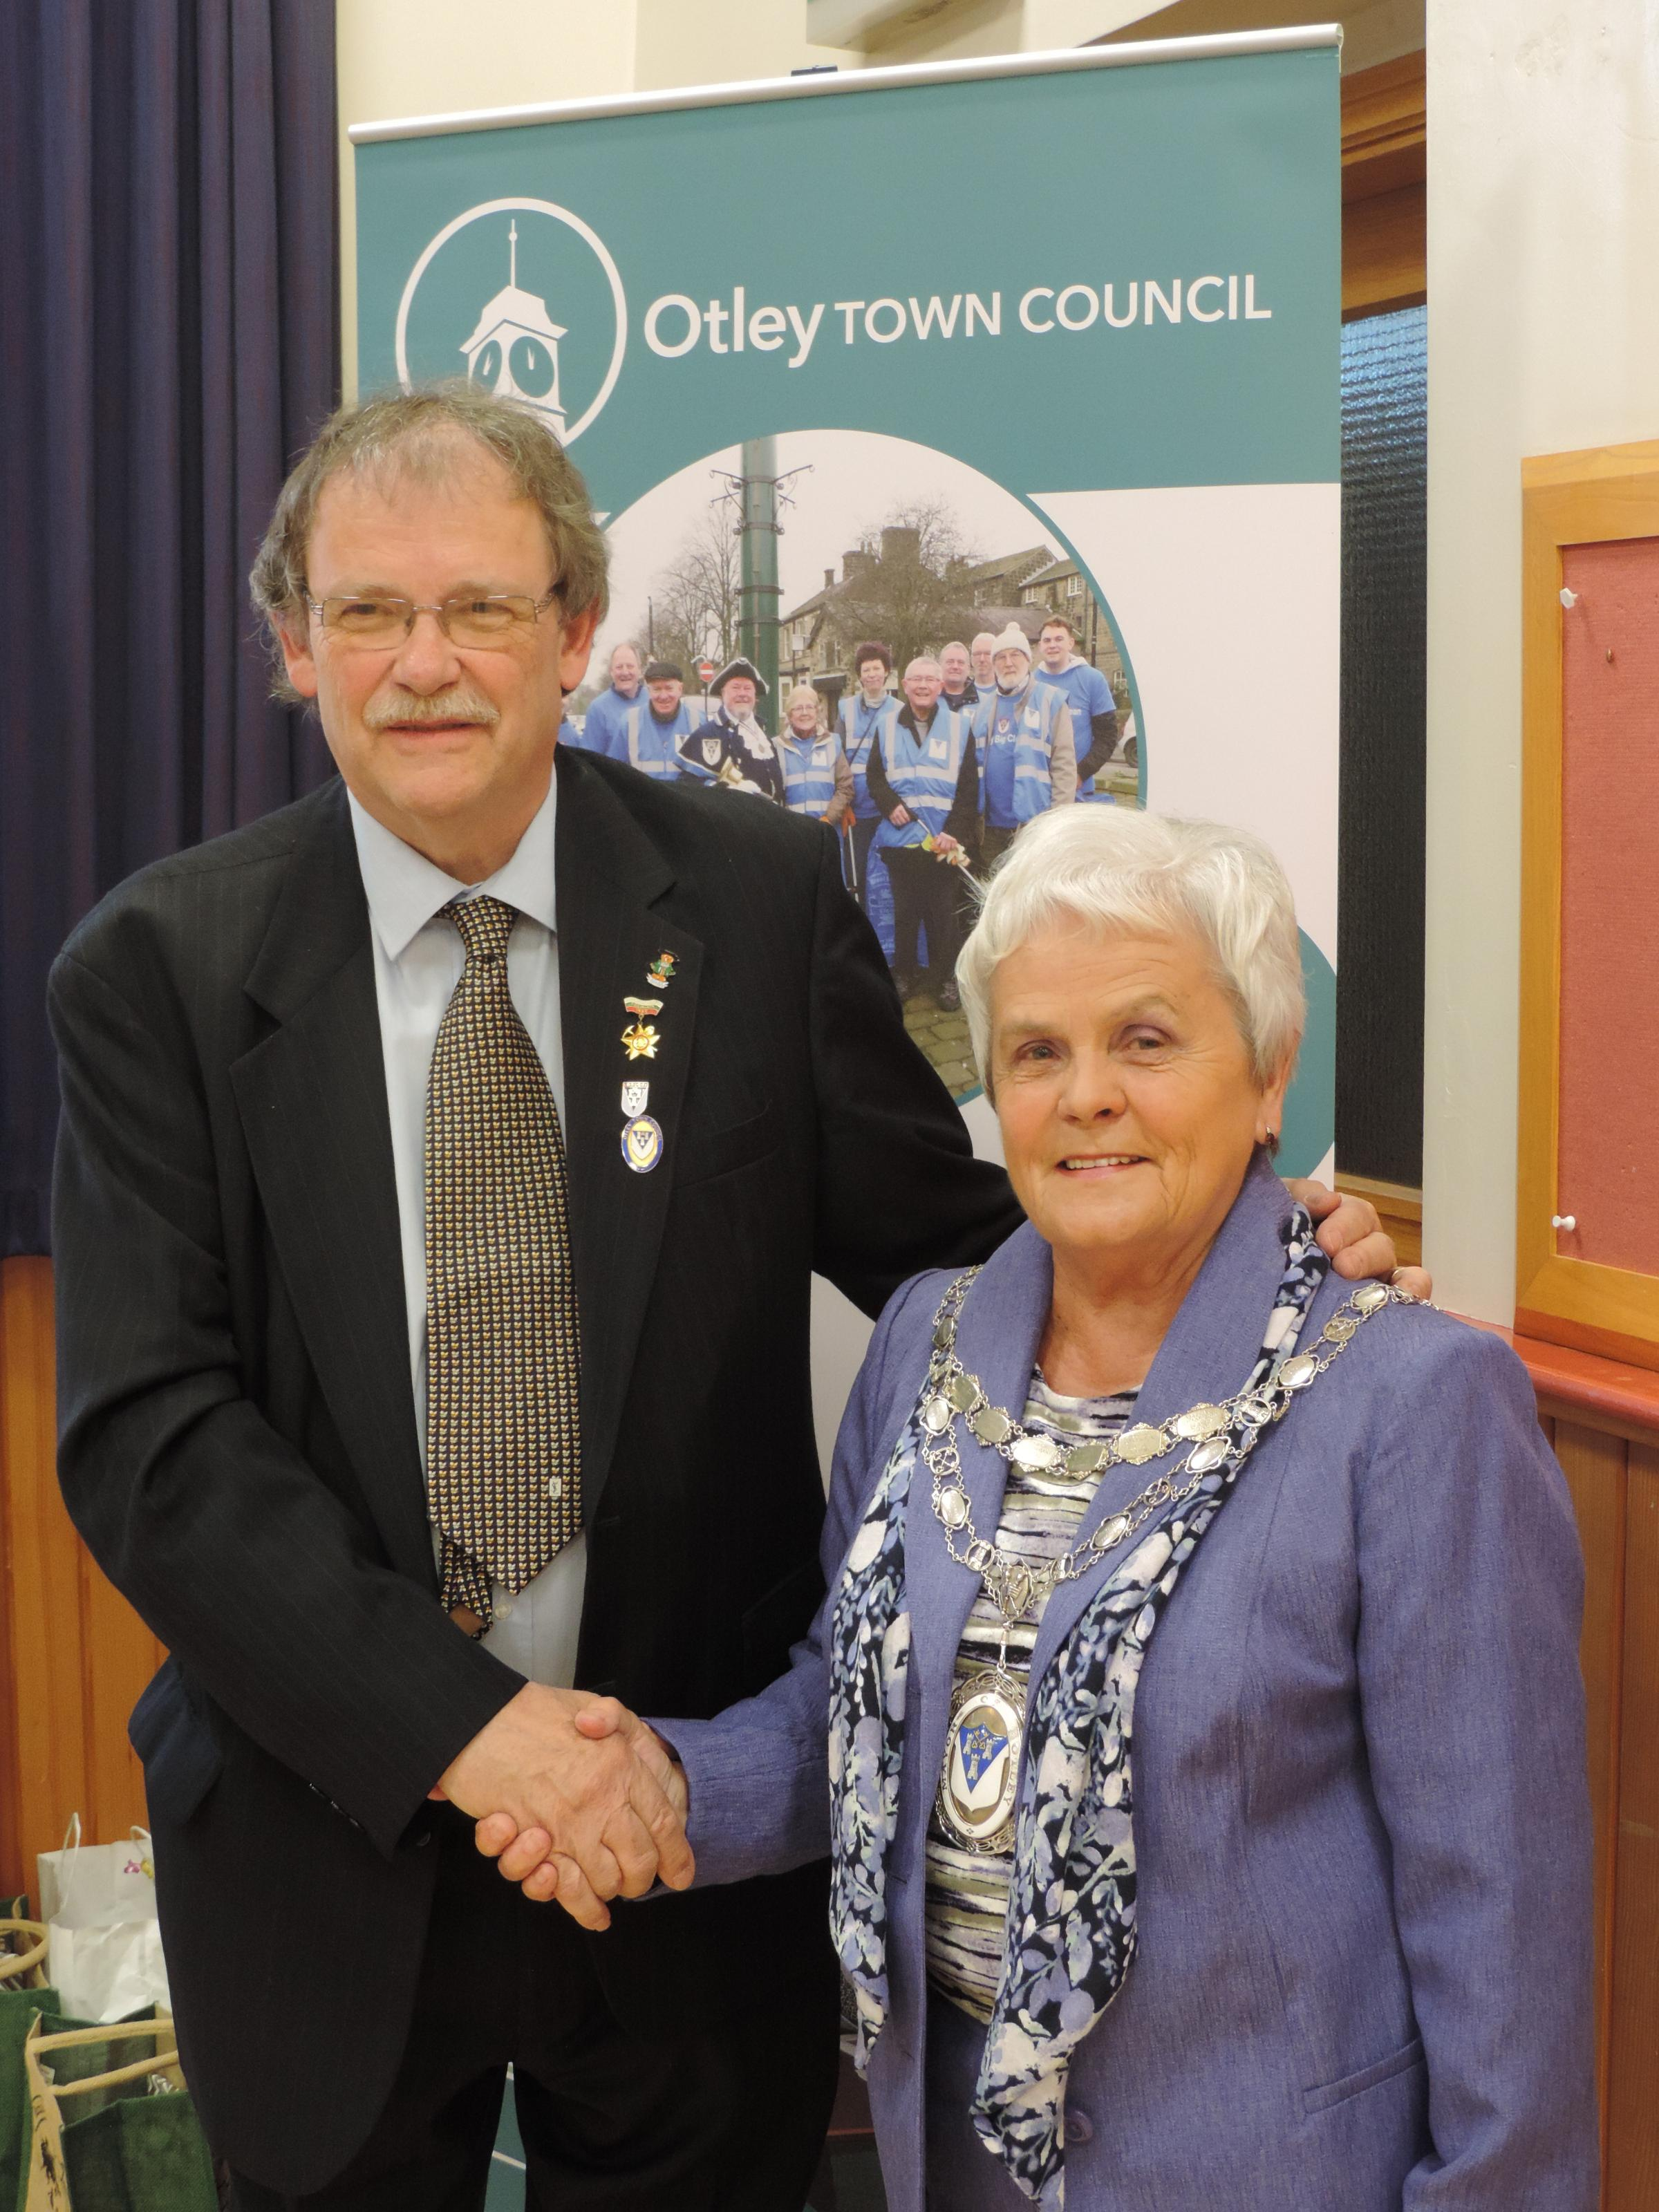 Handover - new Otley Town Mayor Councillor Mary Vickers accepting the chains of office from retiring mayor Councillor Nigel Francis